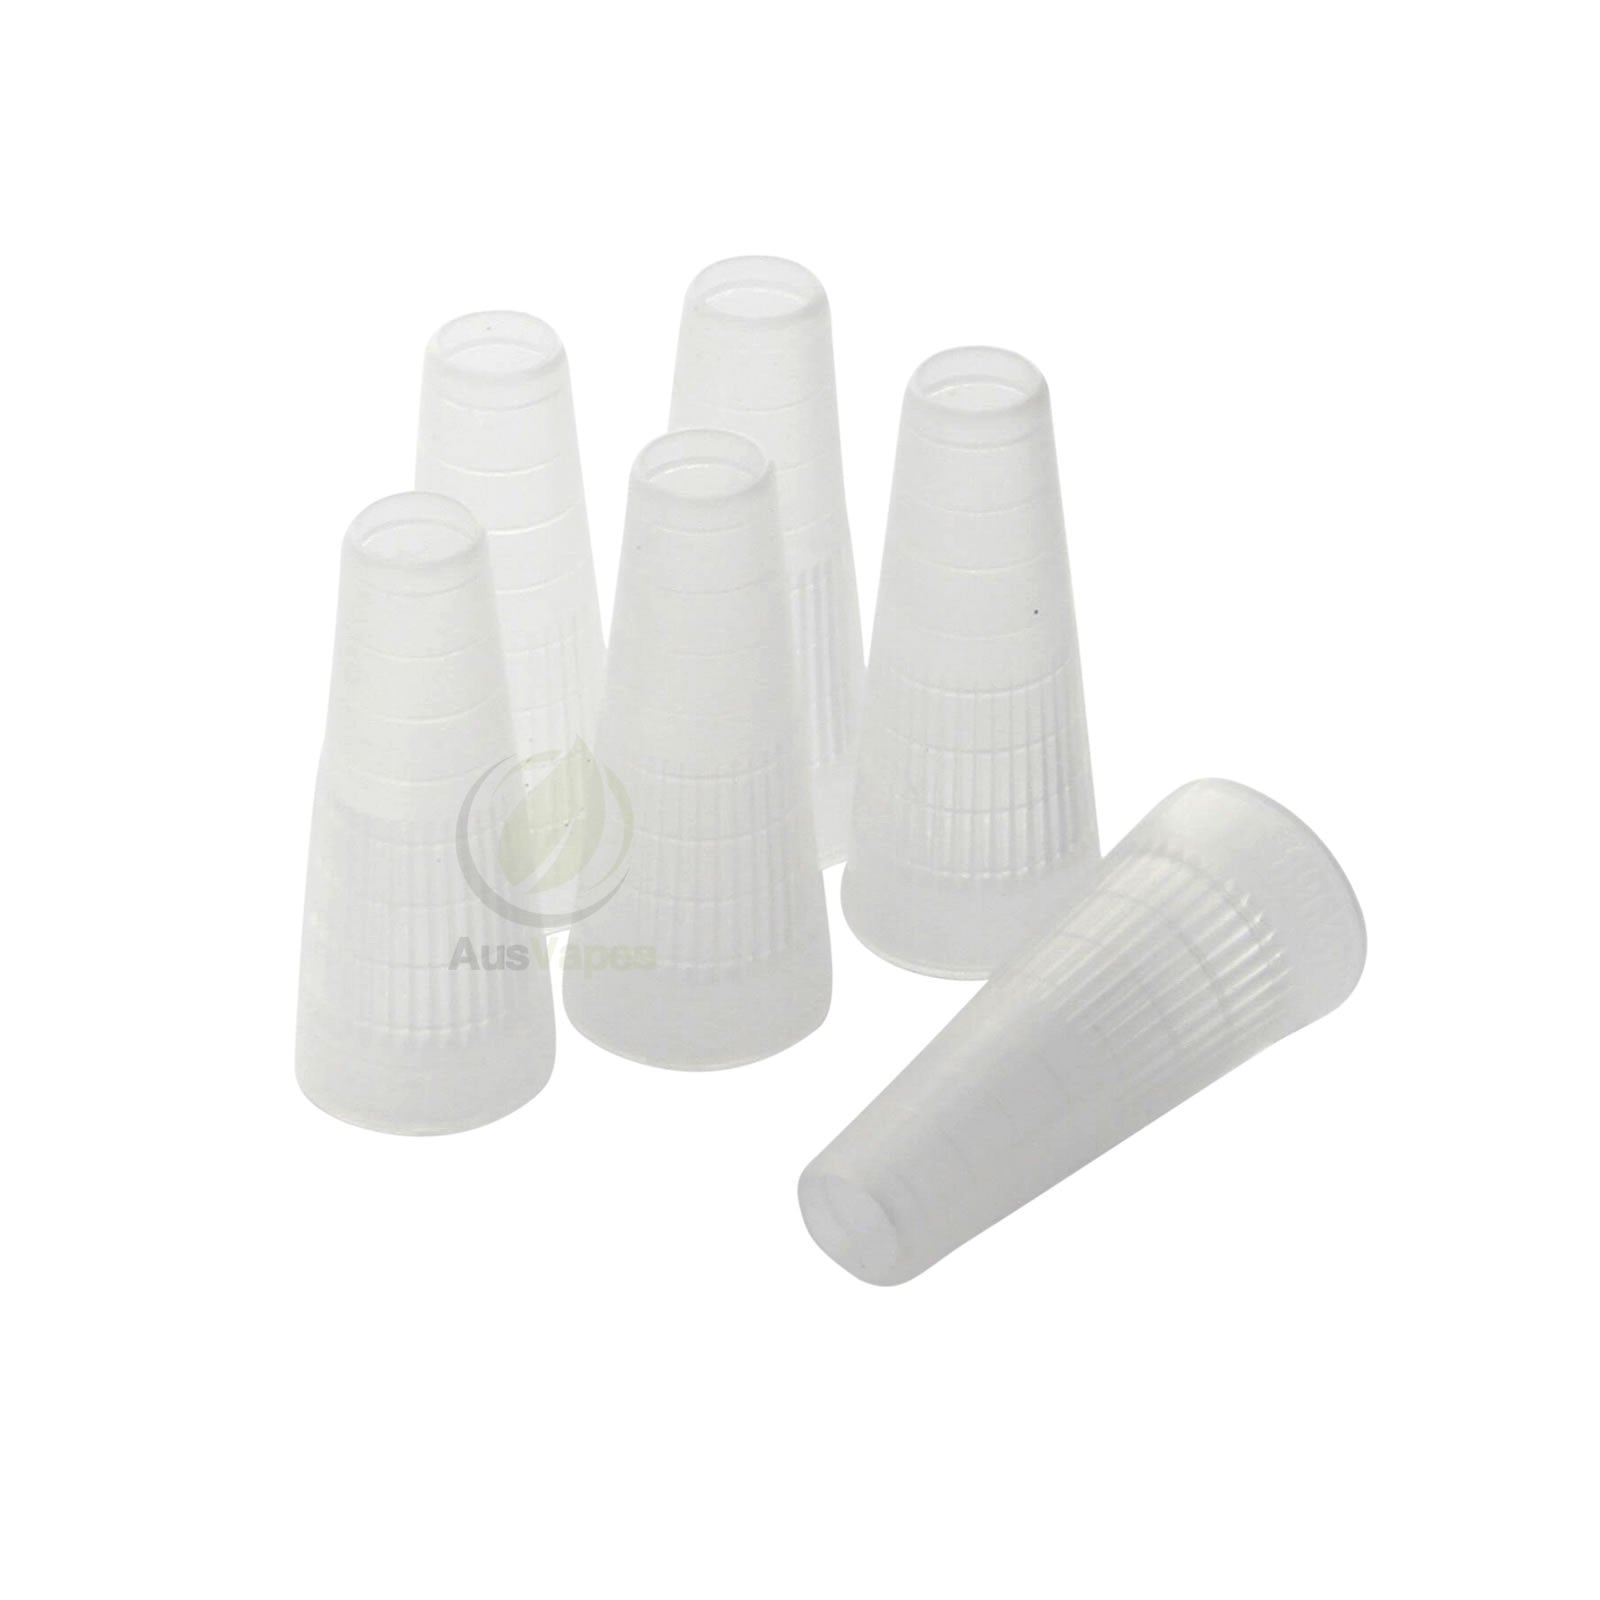 DISCONTINUED ViVape Sanitary Mouthpiece Covers (6 pack) DS